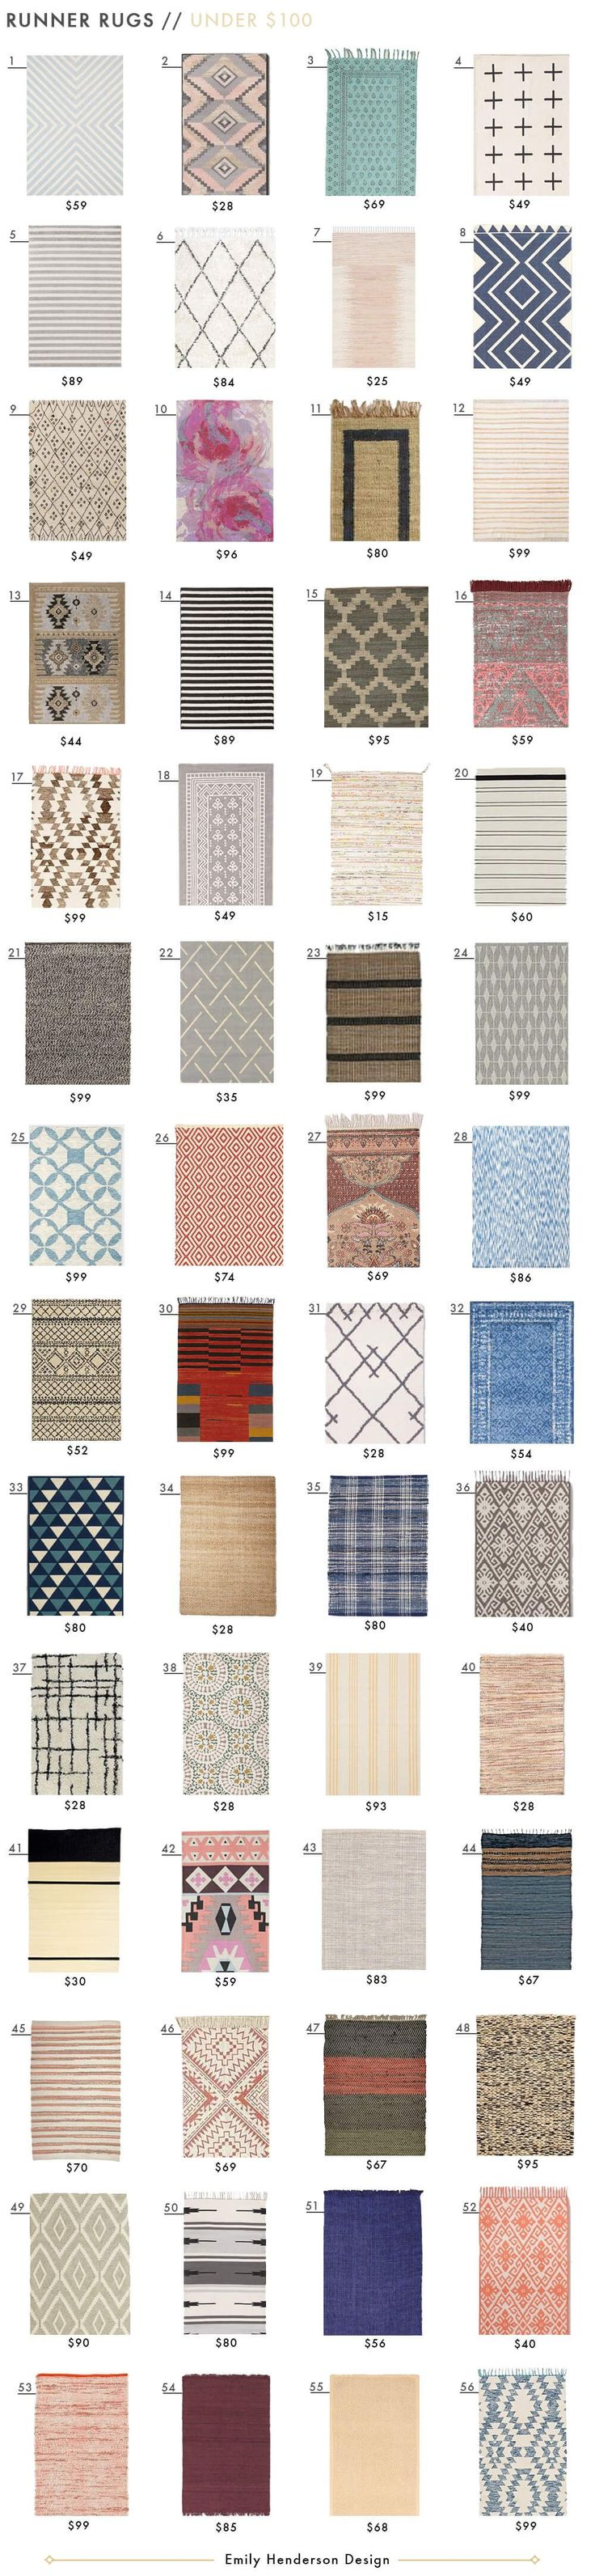 best 20 hallway runner rugs ideas on pinterest long hallway